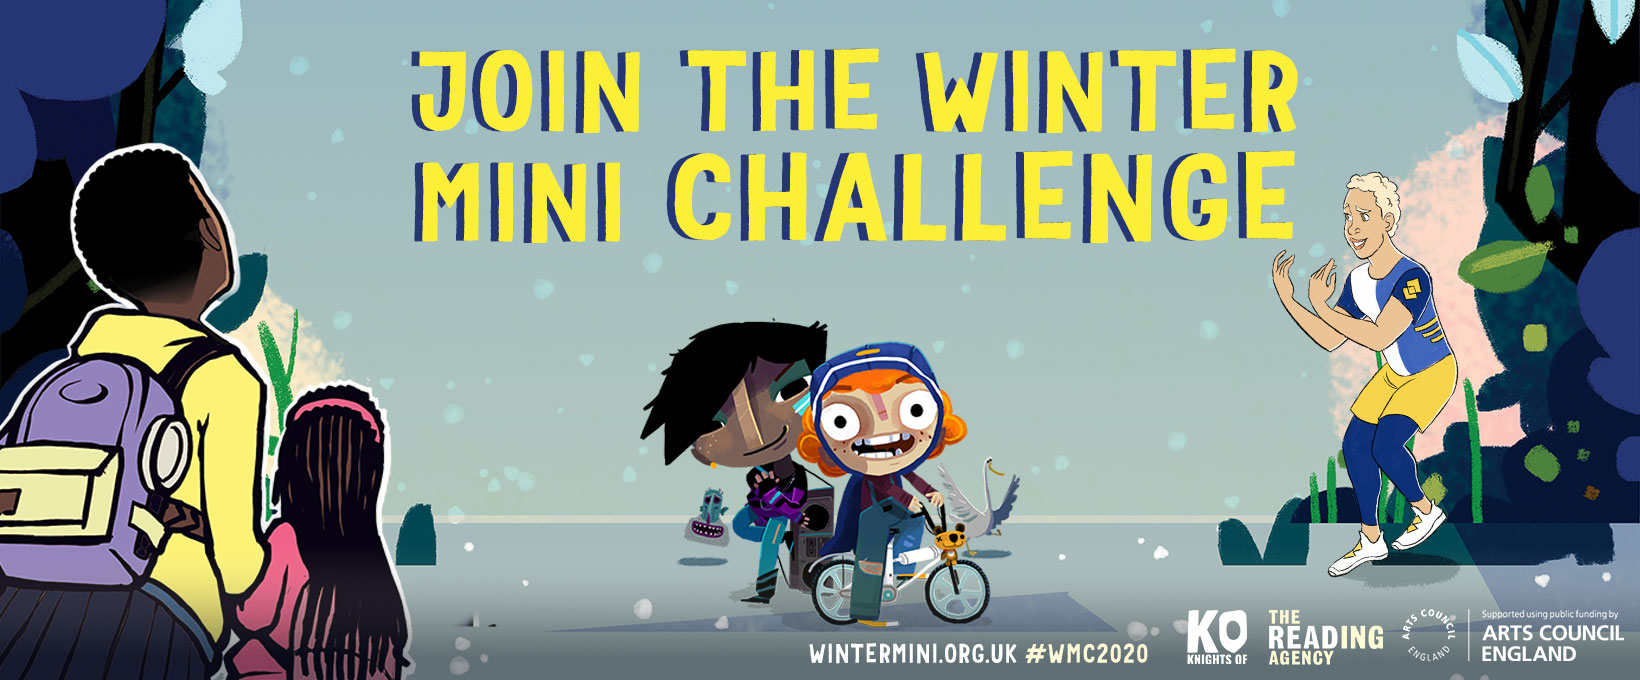 Join the Winter Mini Challenge - banner